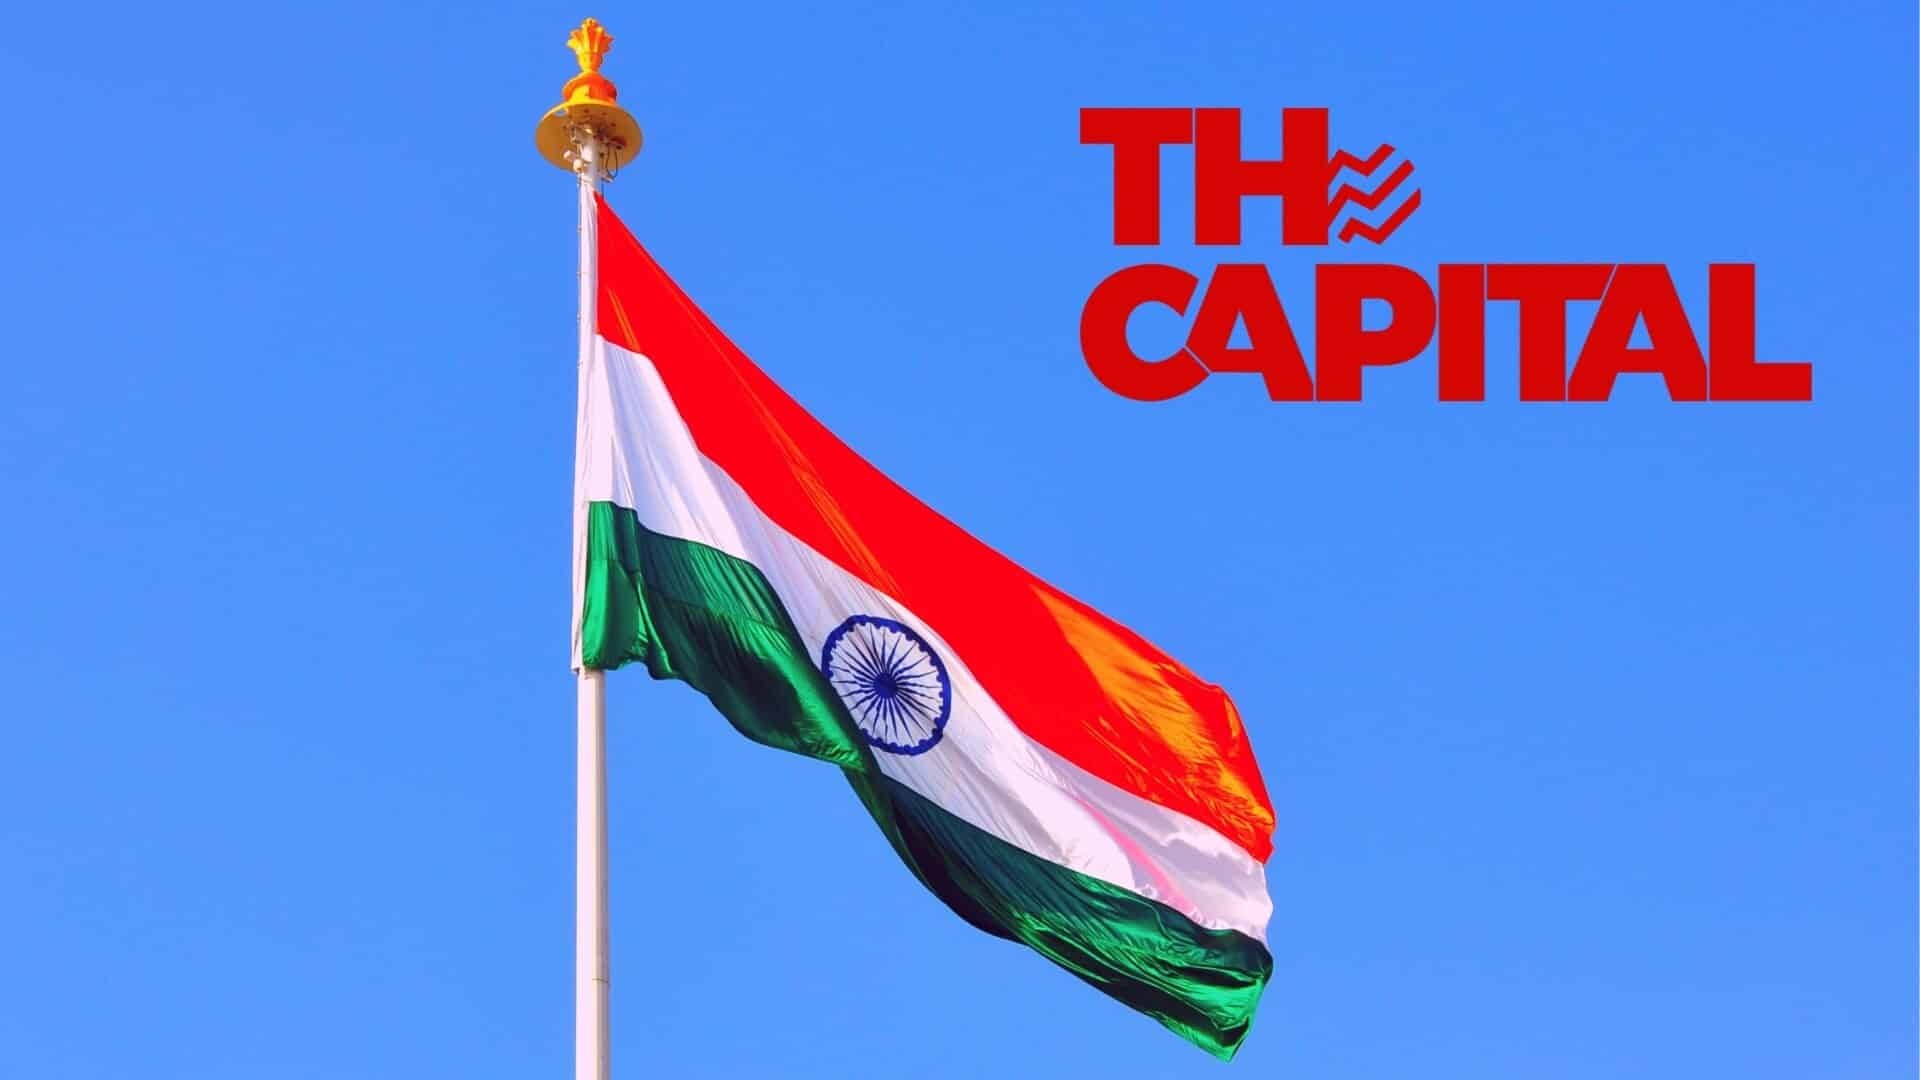 Investment Bank TH Capital Looking to Grow Business in India